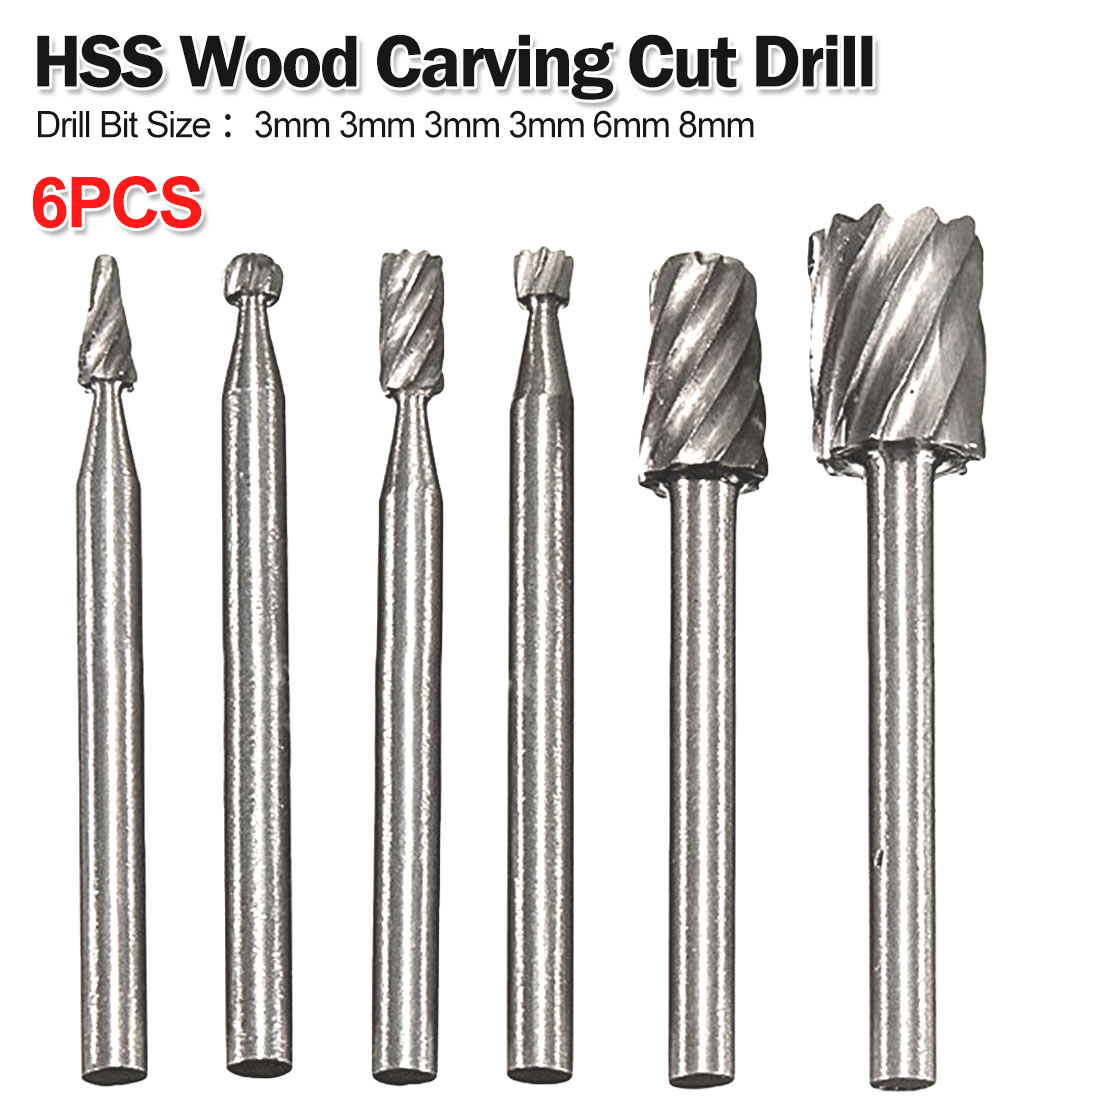 6pcs Rotary Tool HSS Drill Bit Set Cutting Routing Router Grinding Bit Milling Cutter For Woodworking / Plastic Carving Cut Tool